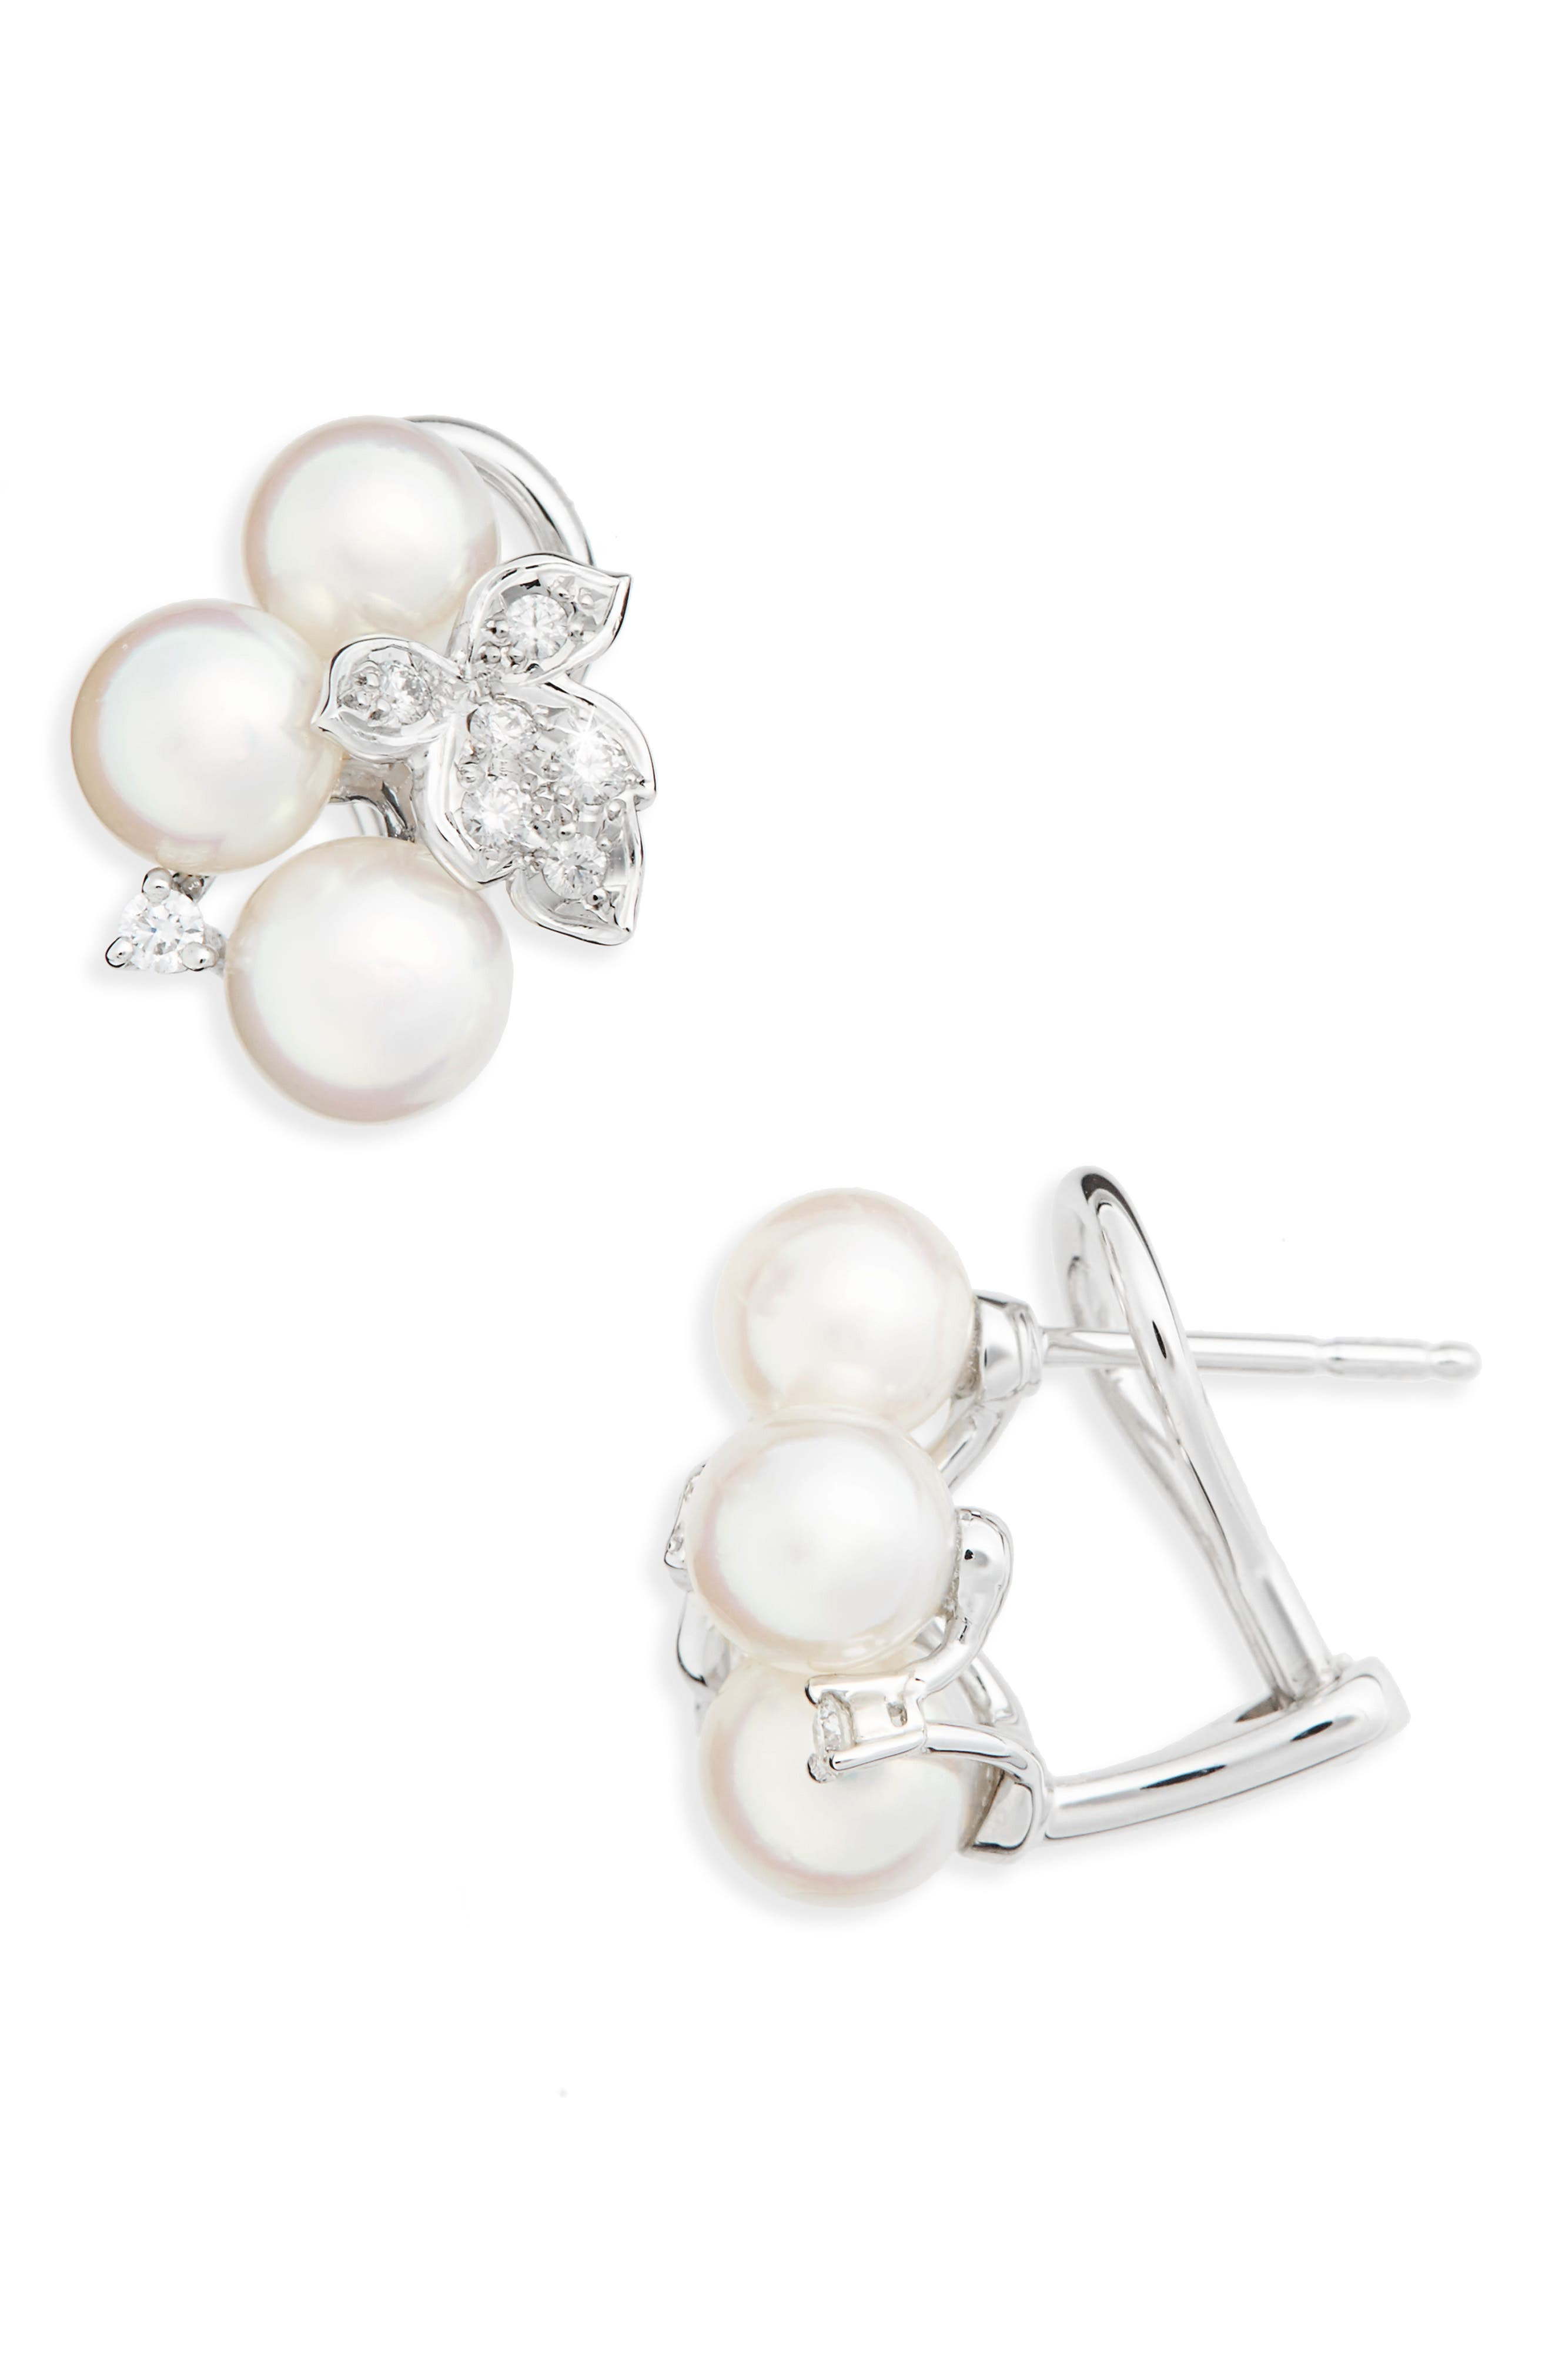 Pearl & Diamond Cluster Earrings,                         Main,                         color, White Gold